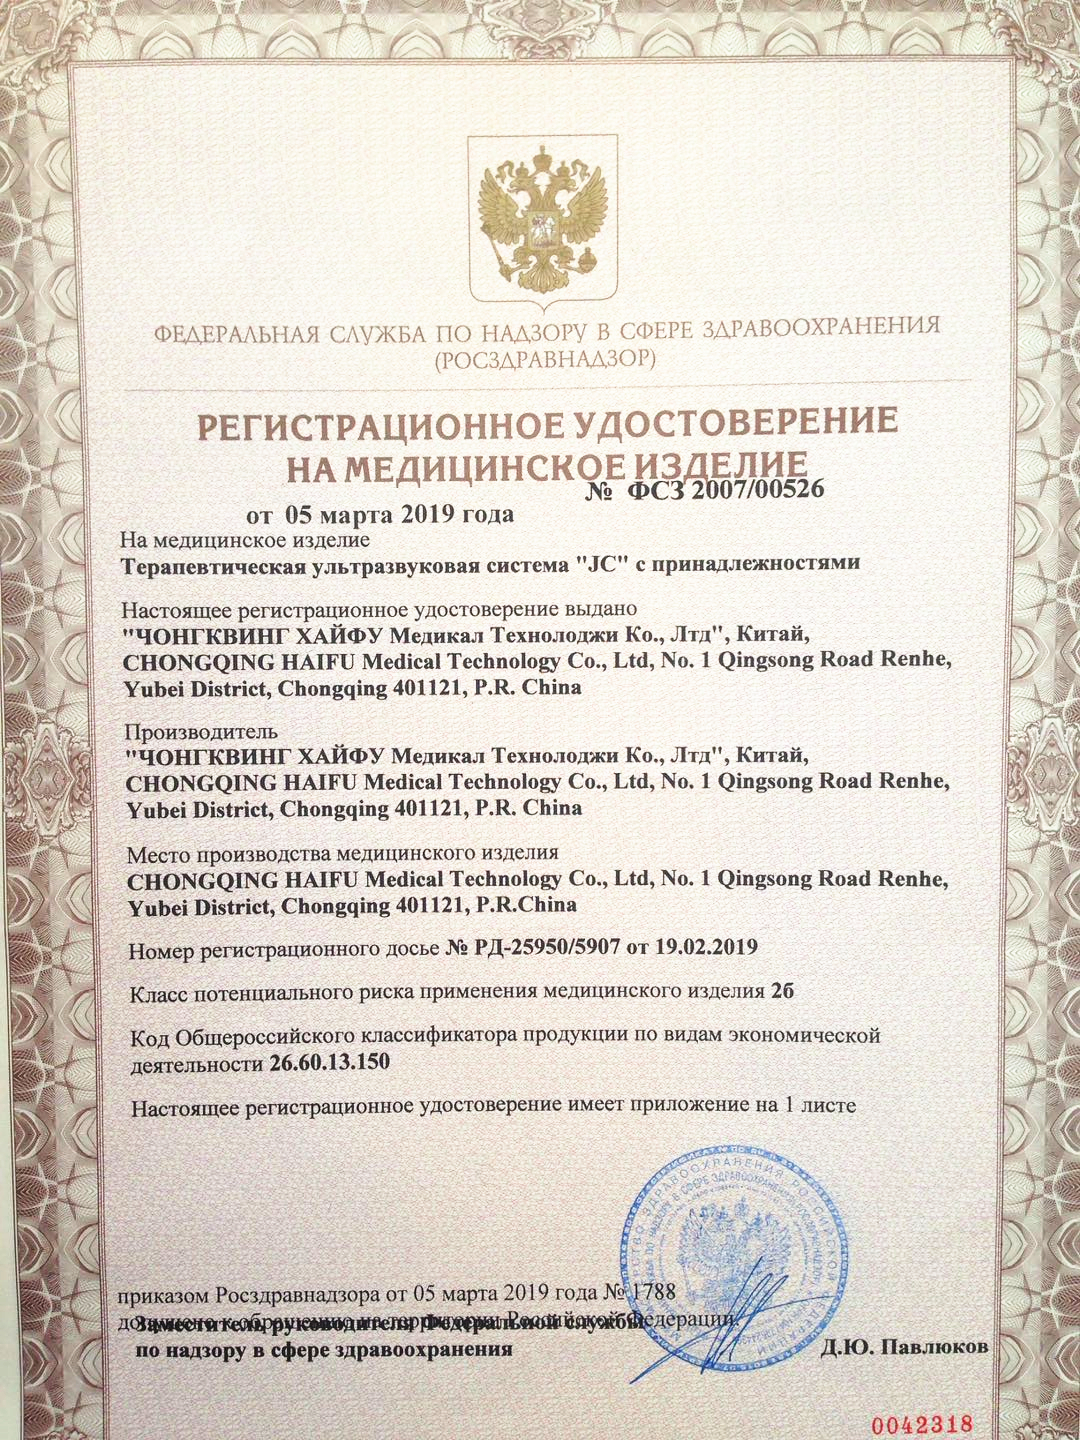 Certification of Russian Ministry of Health